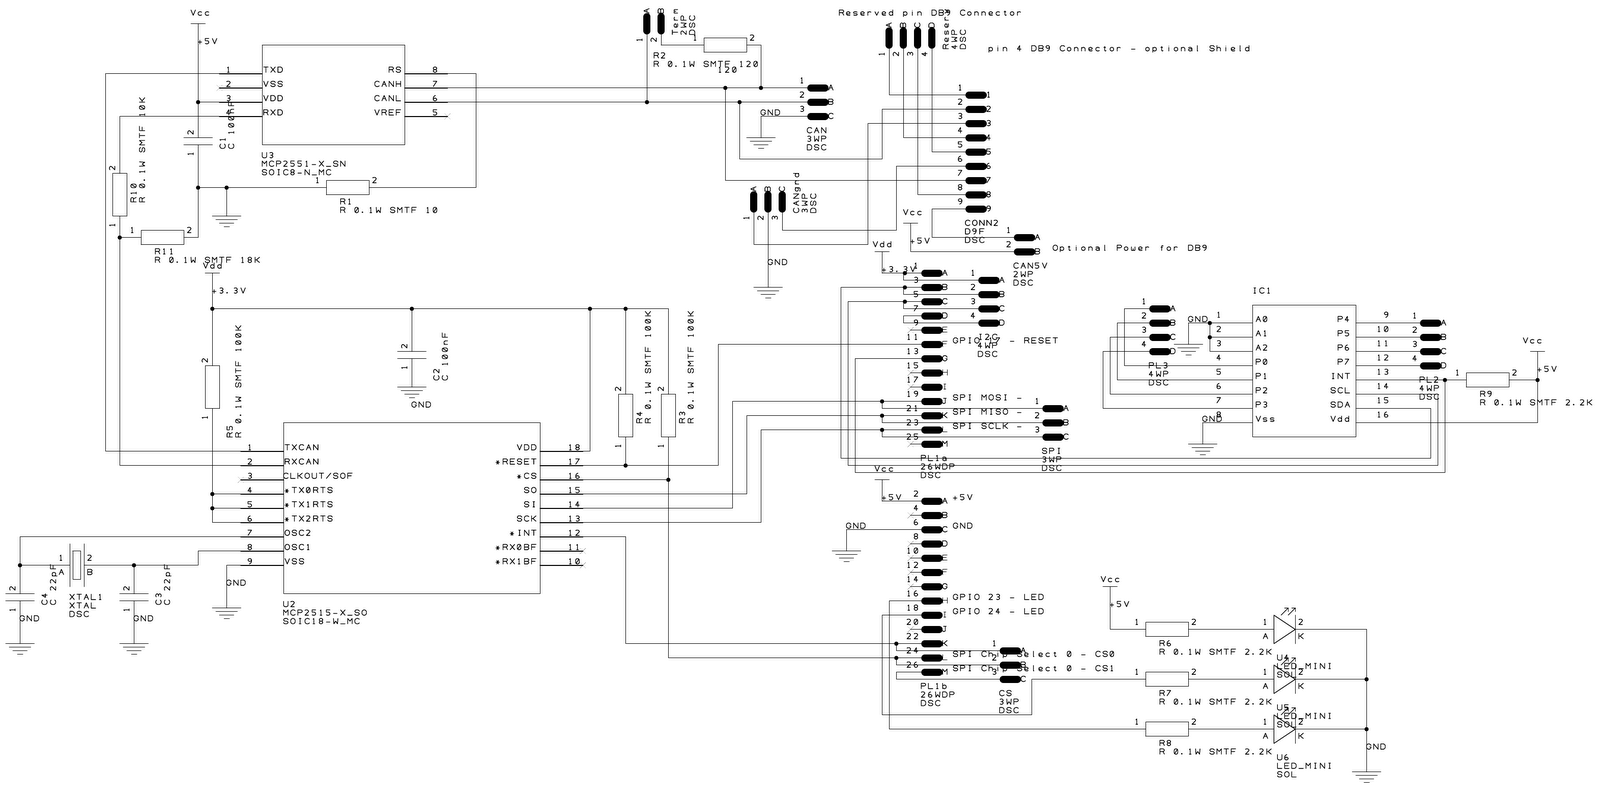 hight resolution of schematic design of pcb board with all components version 0 1 incorrect requires modification